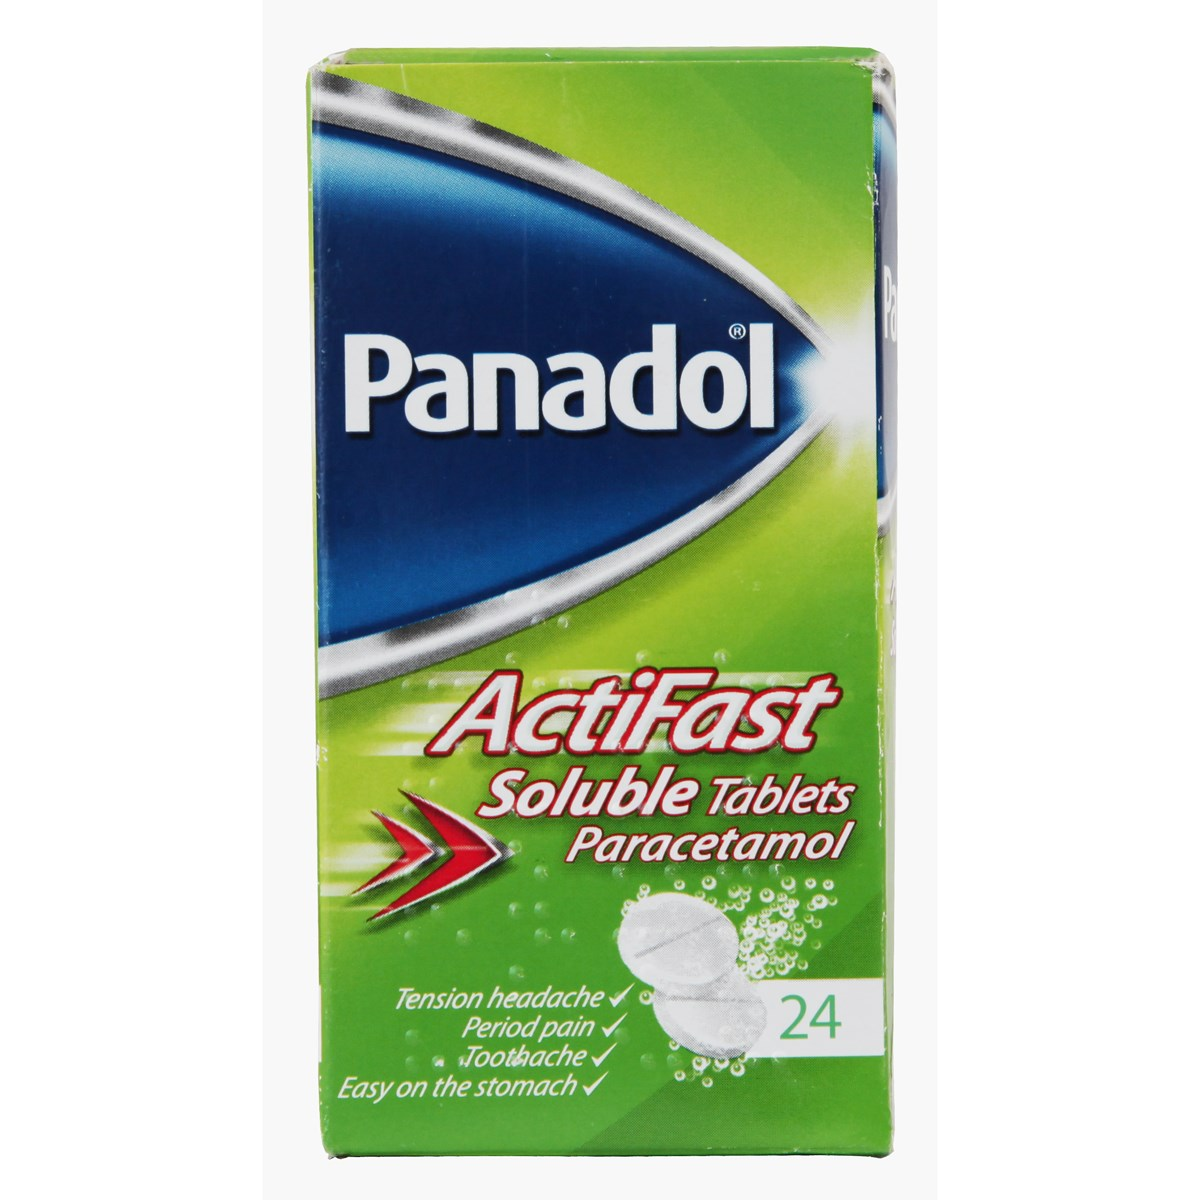 Panadol Actifast Soluble Tablets